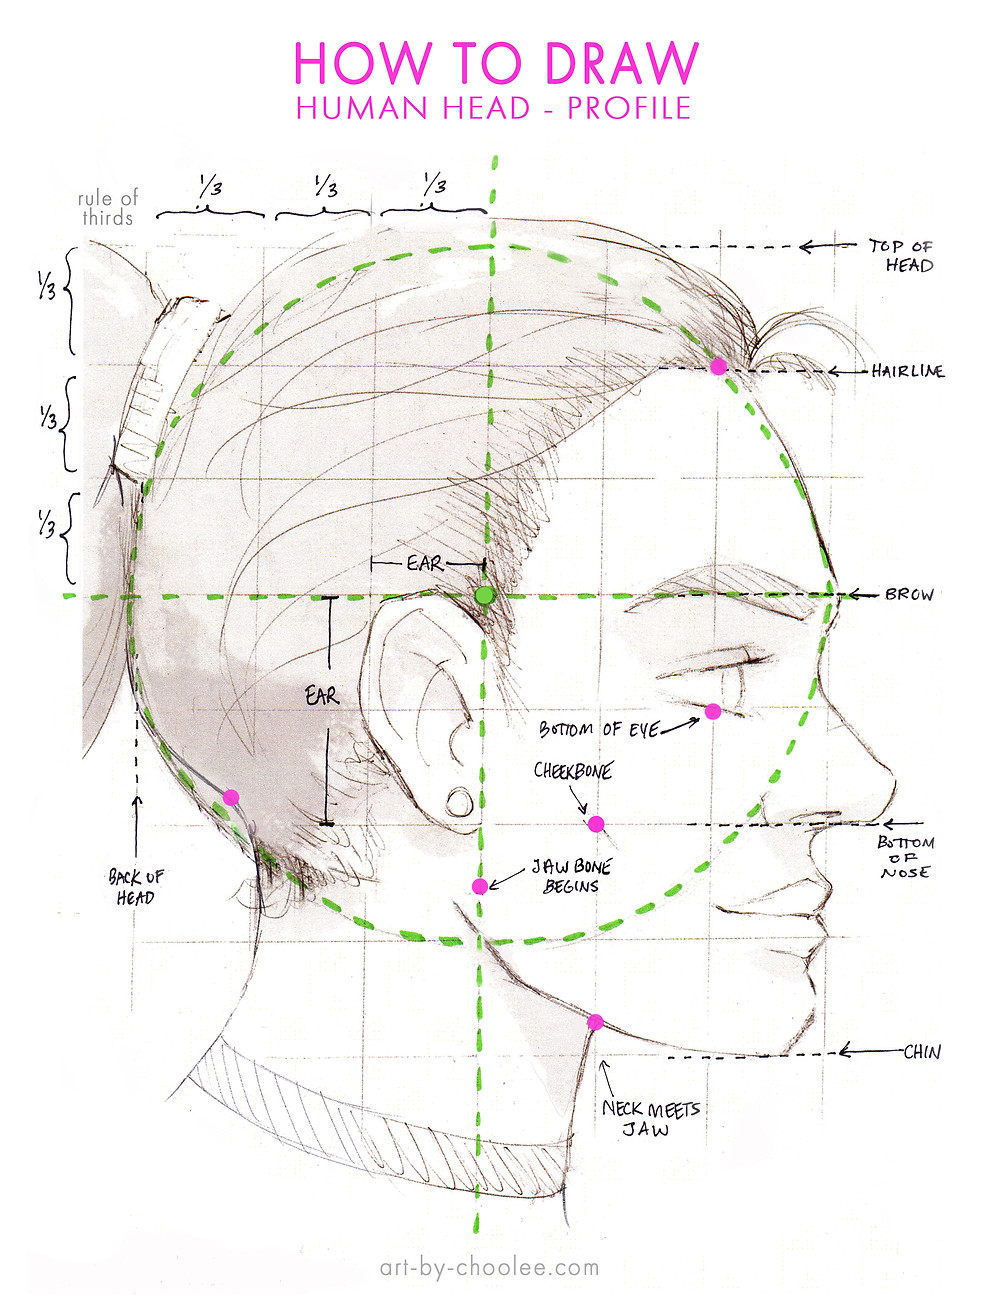 how to draw, how to draw the human head, diagram of human head